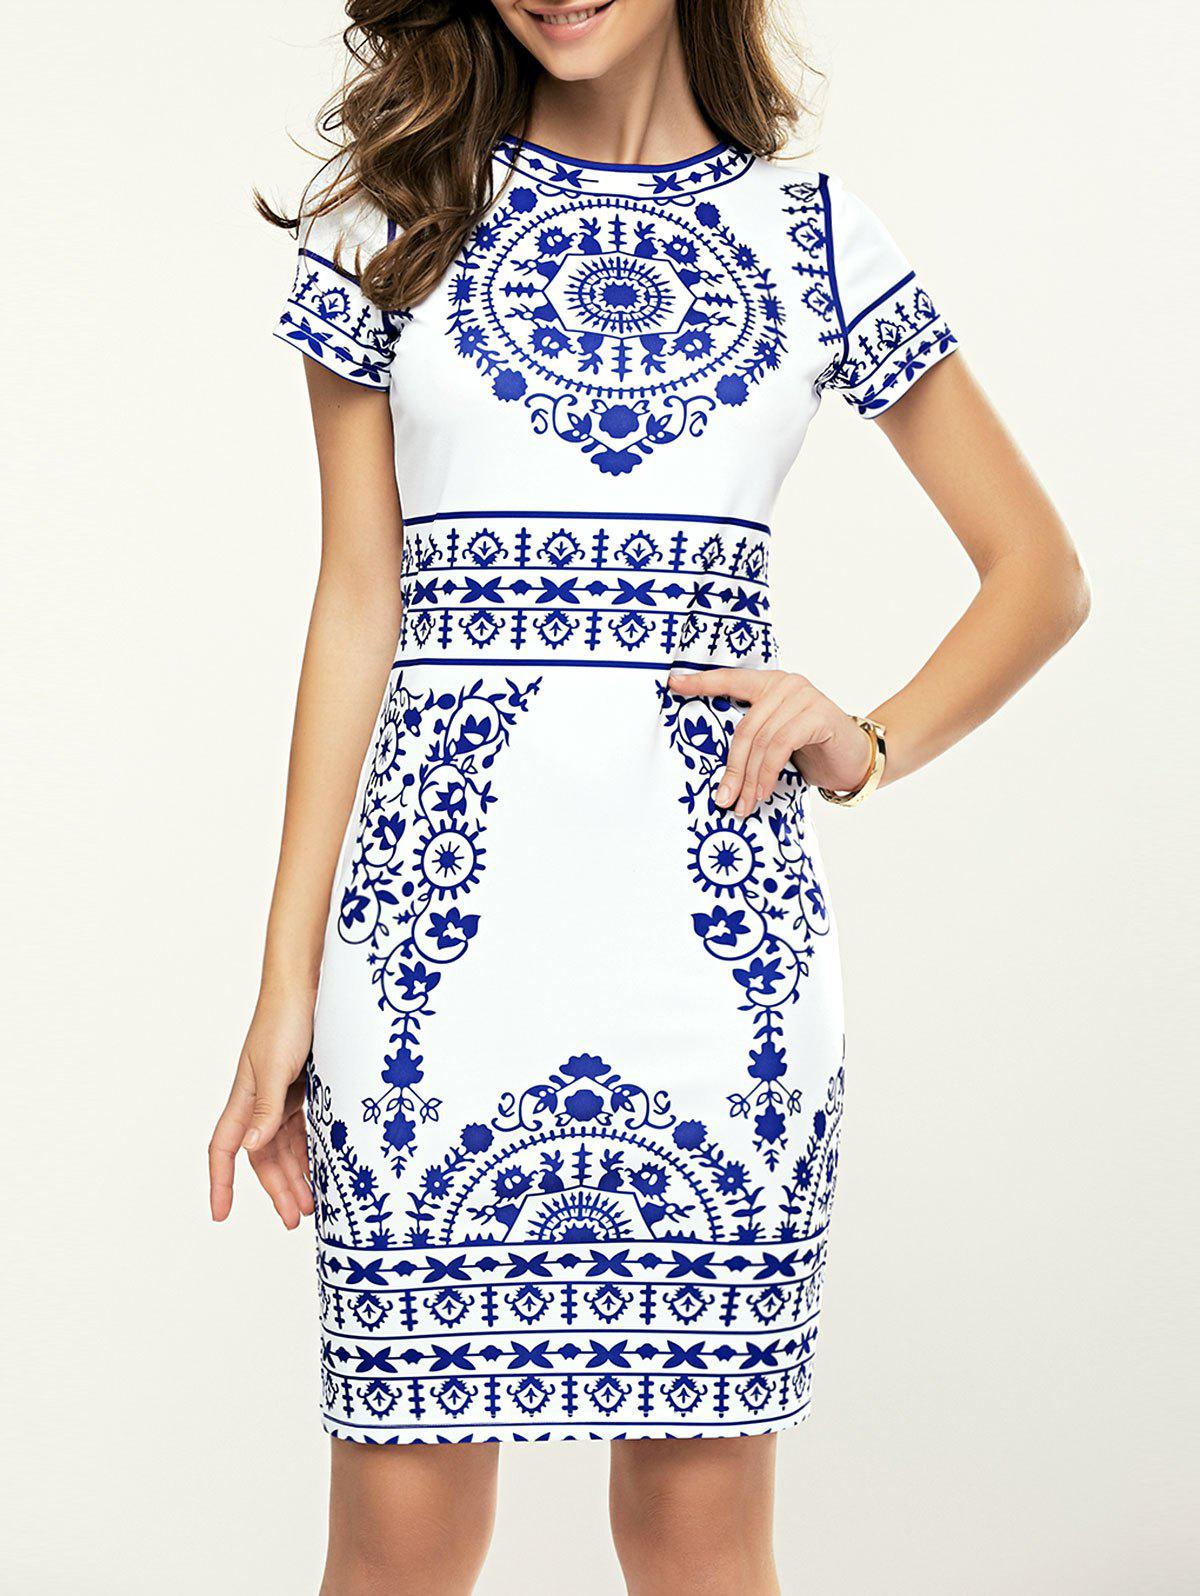 Women's Short Sleeve Blue and White Porcelain Print Dress - PURPLISHBLUE / WHITE XL